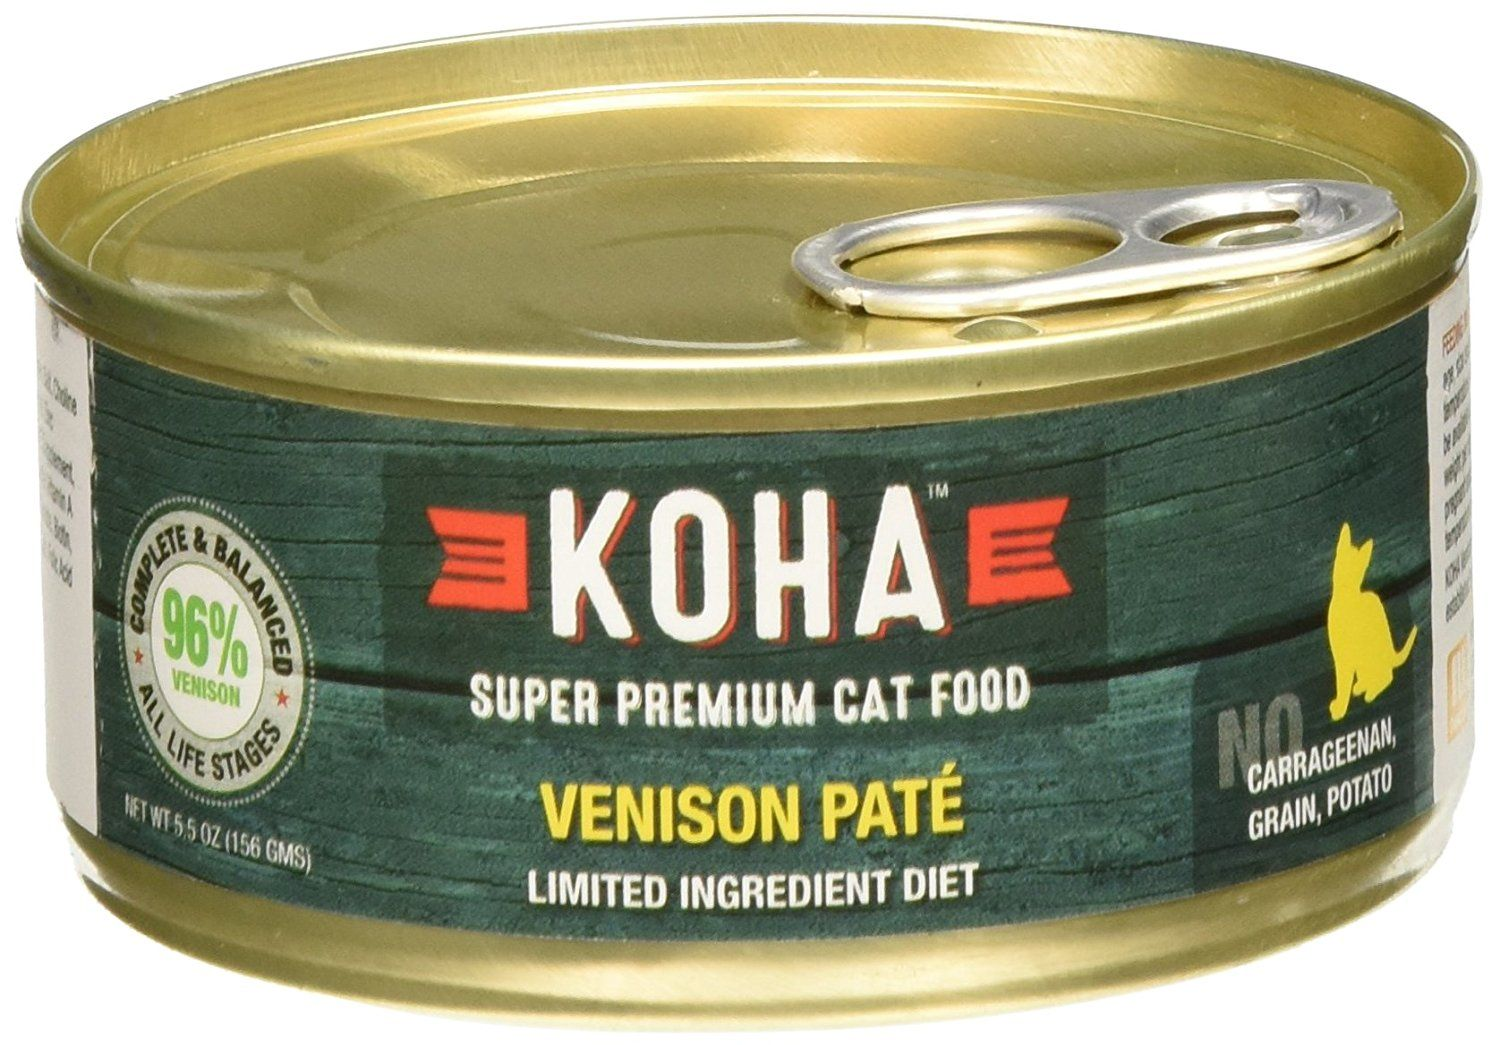 Koha can venison cat food 24 pack 55 oz be sure to